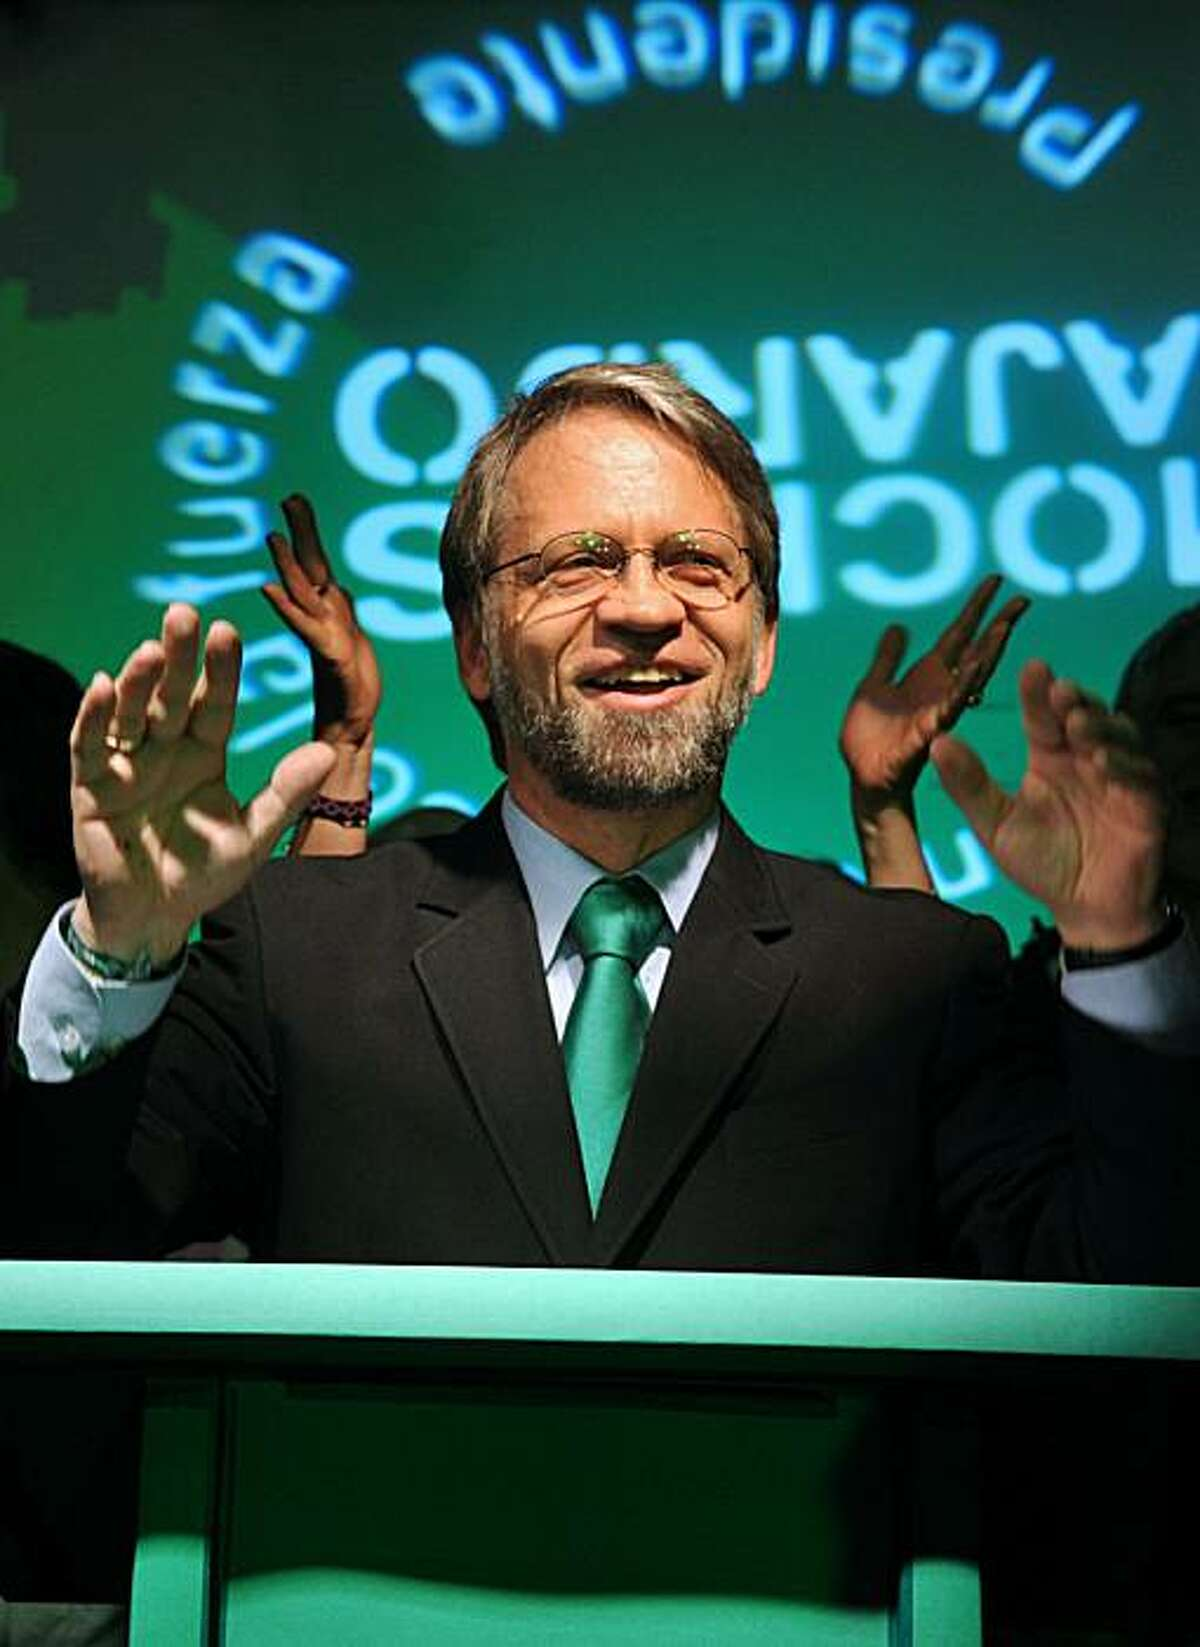 Colombian presidential candidate for the Green Party, Antanas Mockus, gestures after losing the presidential election run-off with Juan Manuel Santos of the ruling National Unity party on June 20, 2010 in Bogota, Colombia. Conservative ex-defense ministerJuan Manuel Santos handily won Colombia's presidential run-off vote Sunday with a whopping 69.2 percent of the vote.